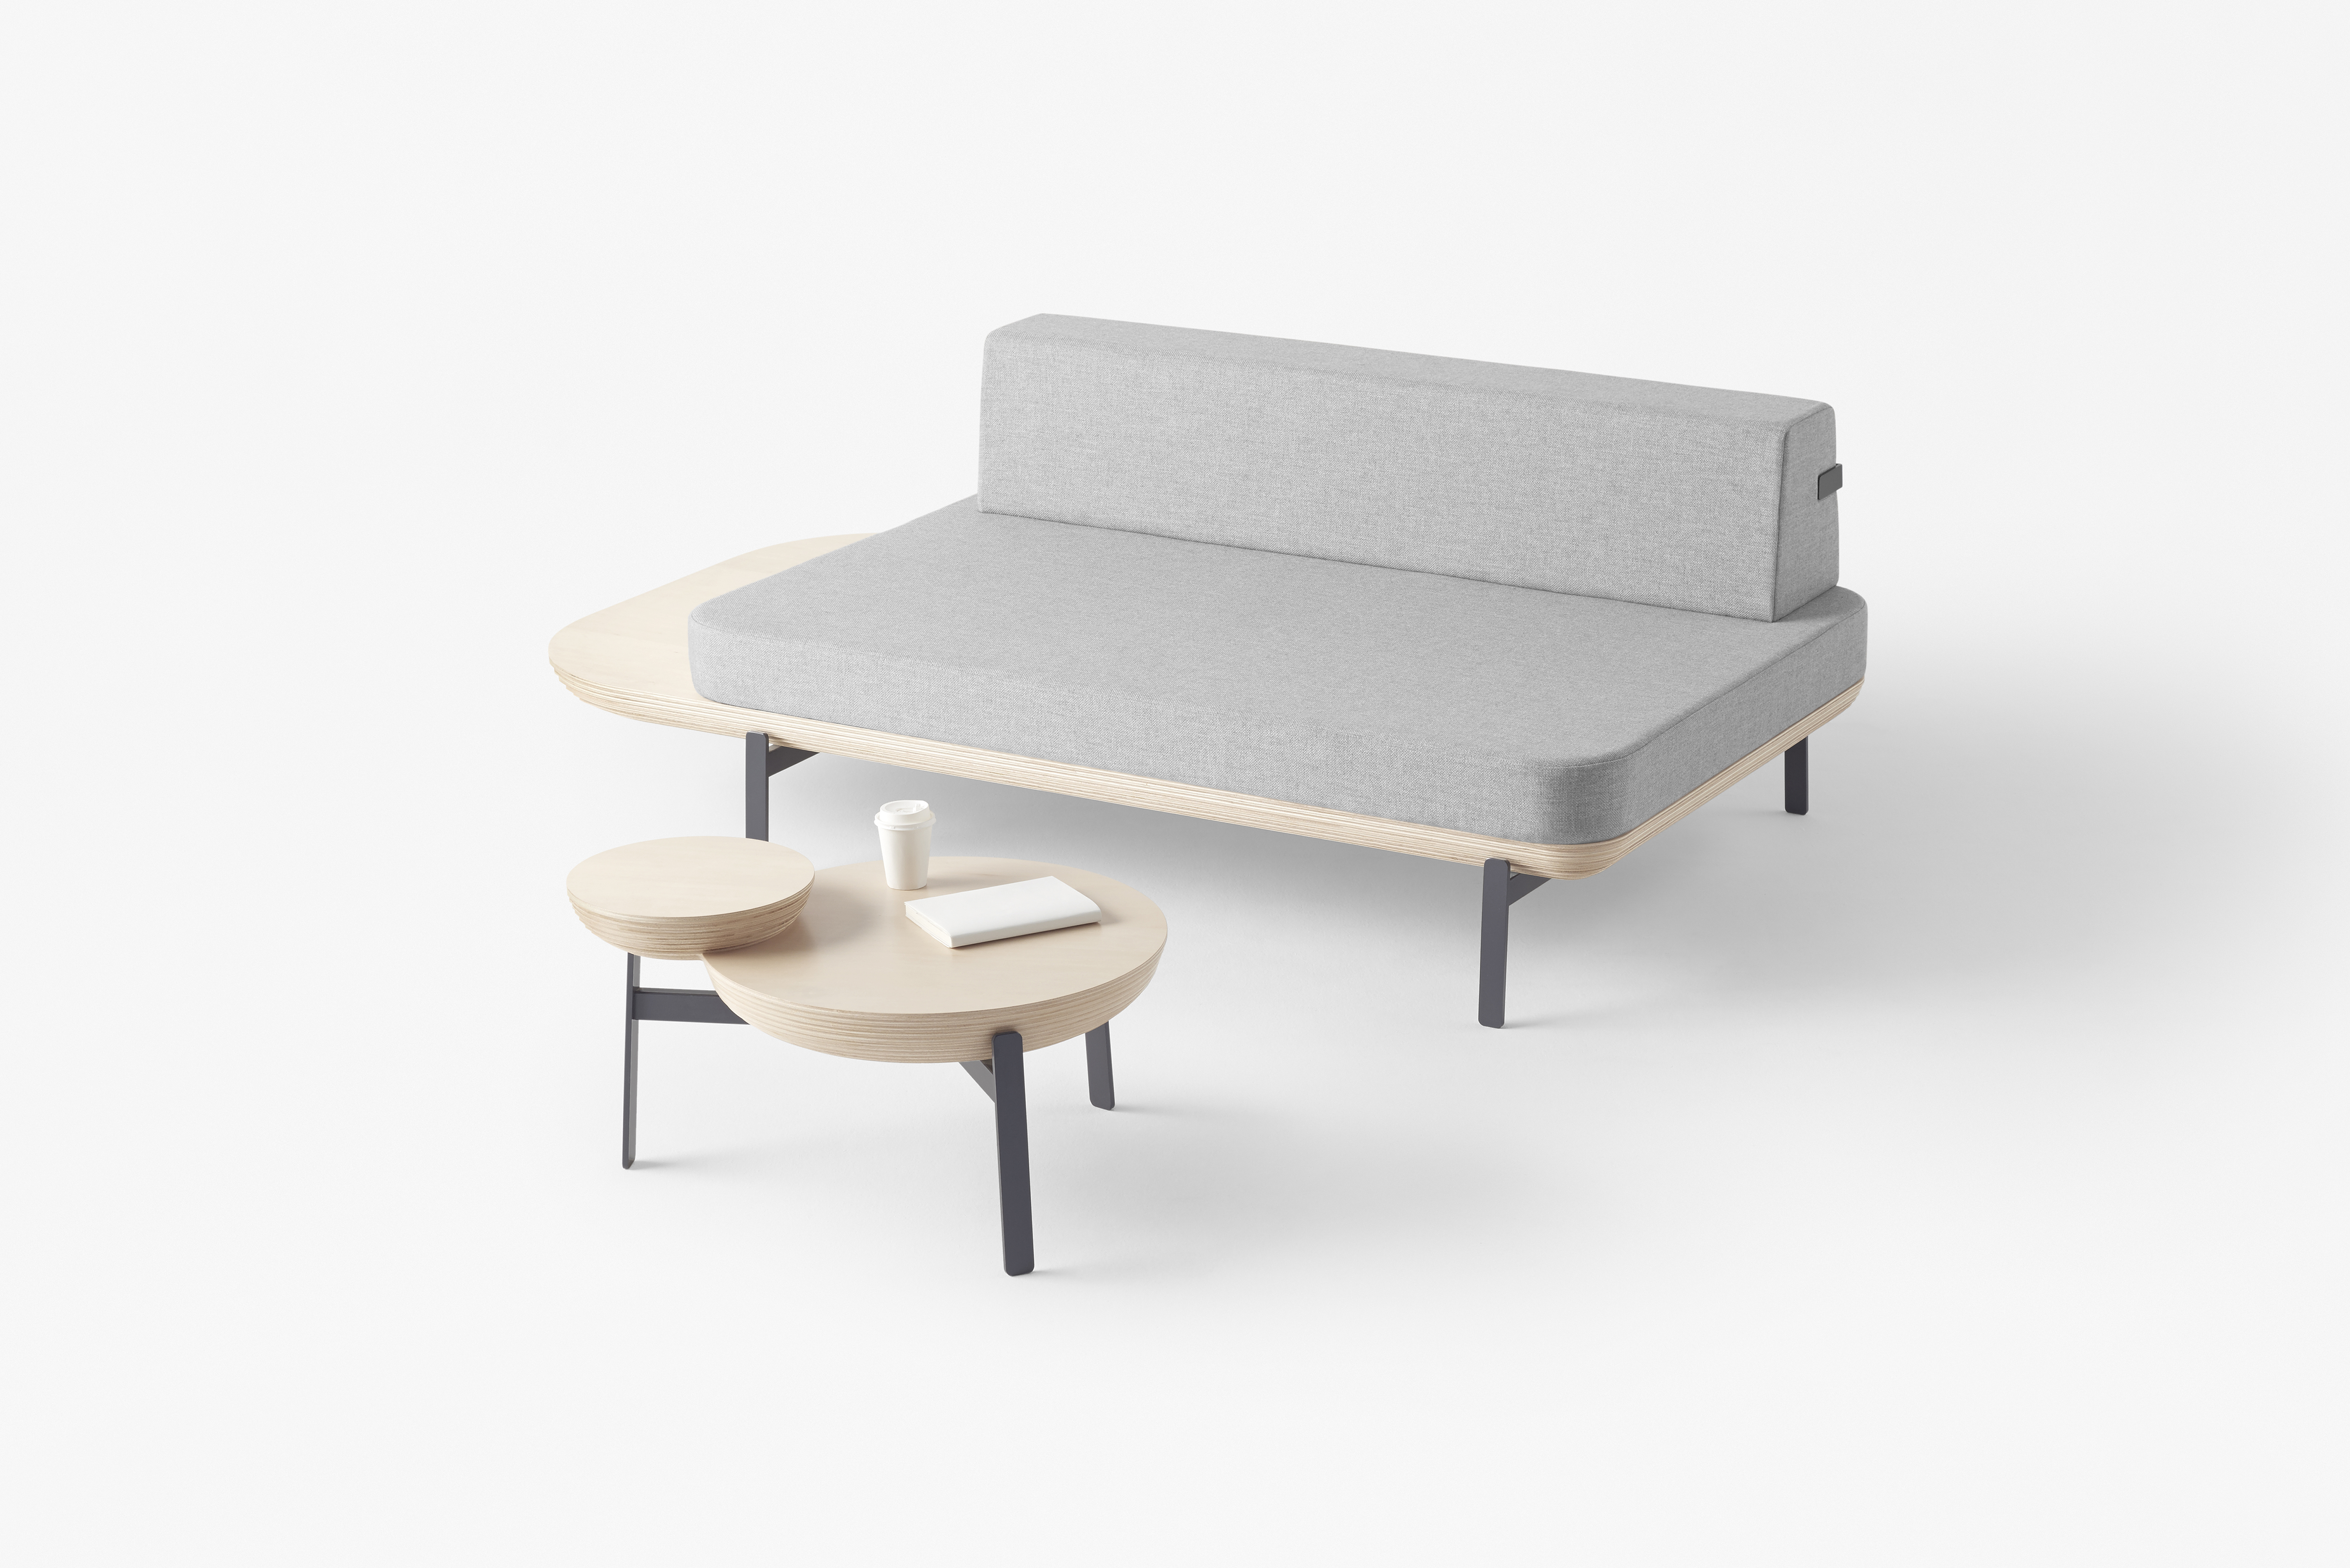 furniture18